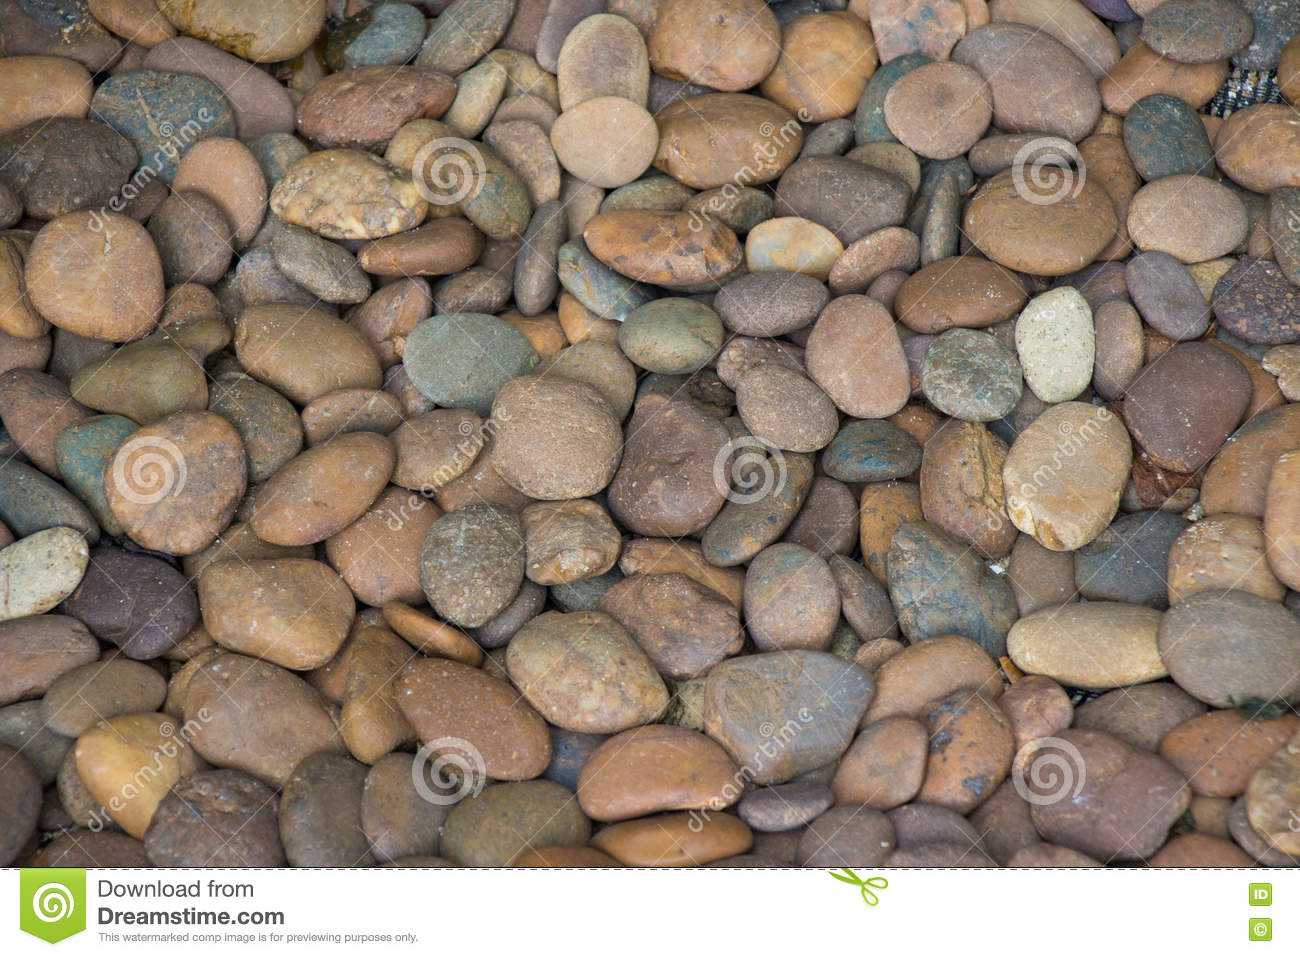 Rounded Stones Eroded From A River And Piled In An